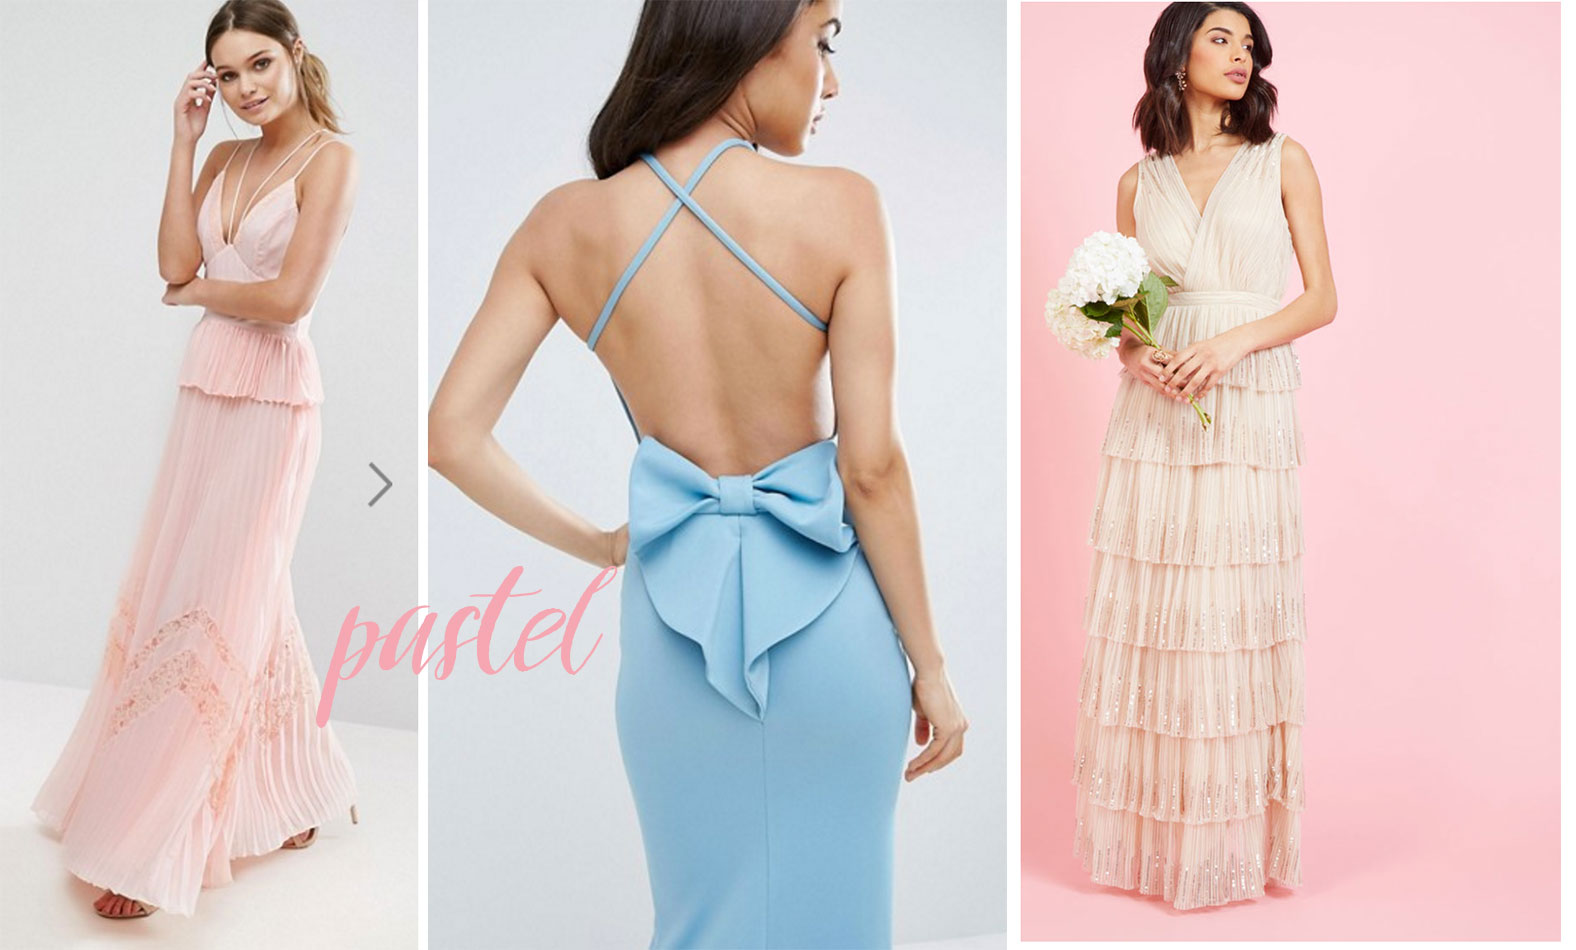 Pastel black tie dresses for Barristers' Ball